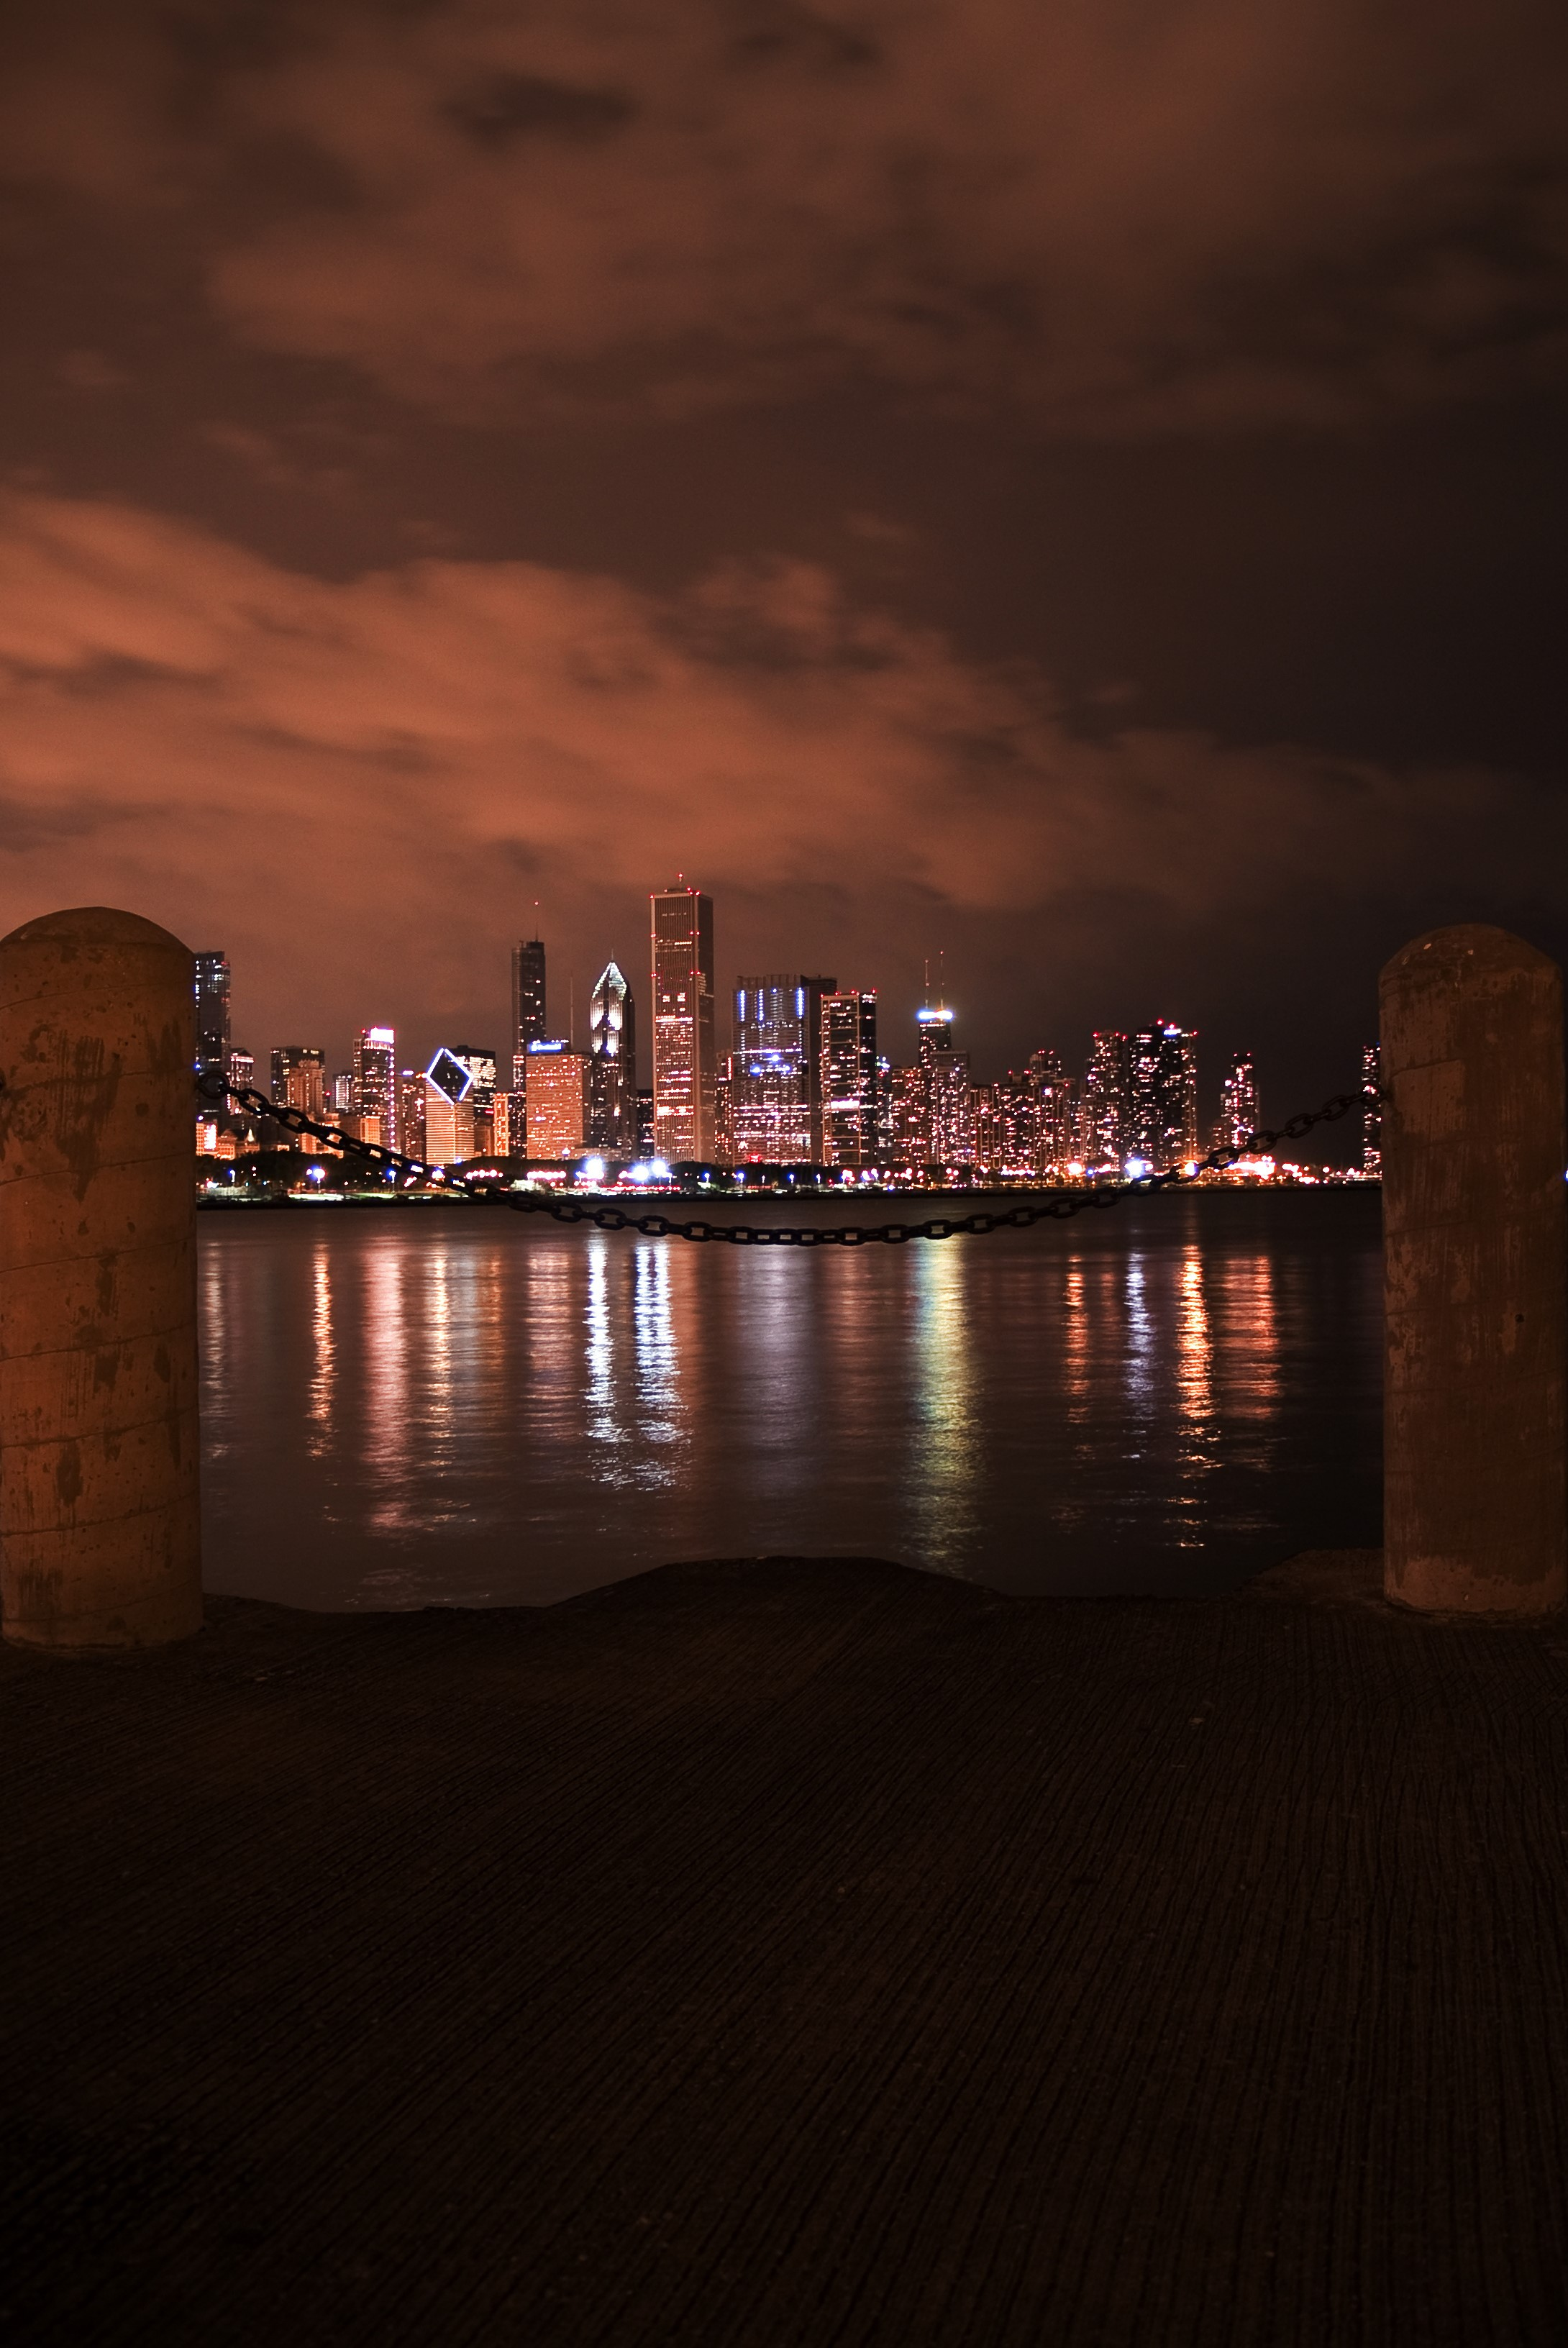 A view from the Adler Planetarium, Chicago, Illinois - by John Cornelissen